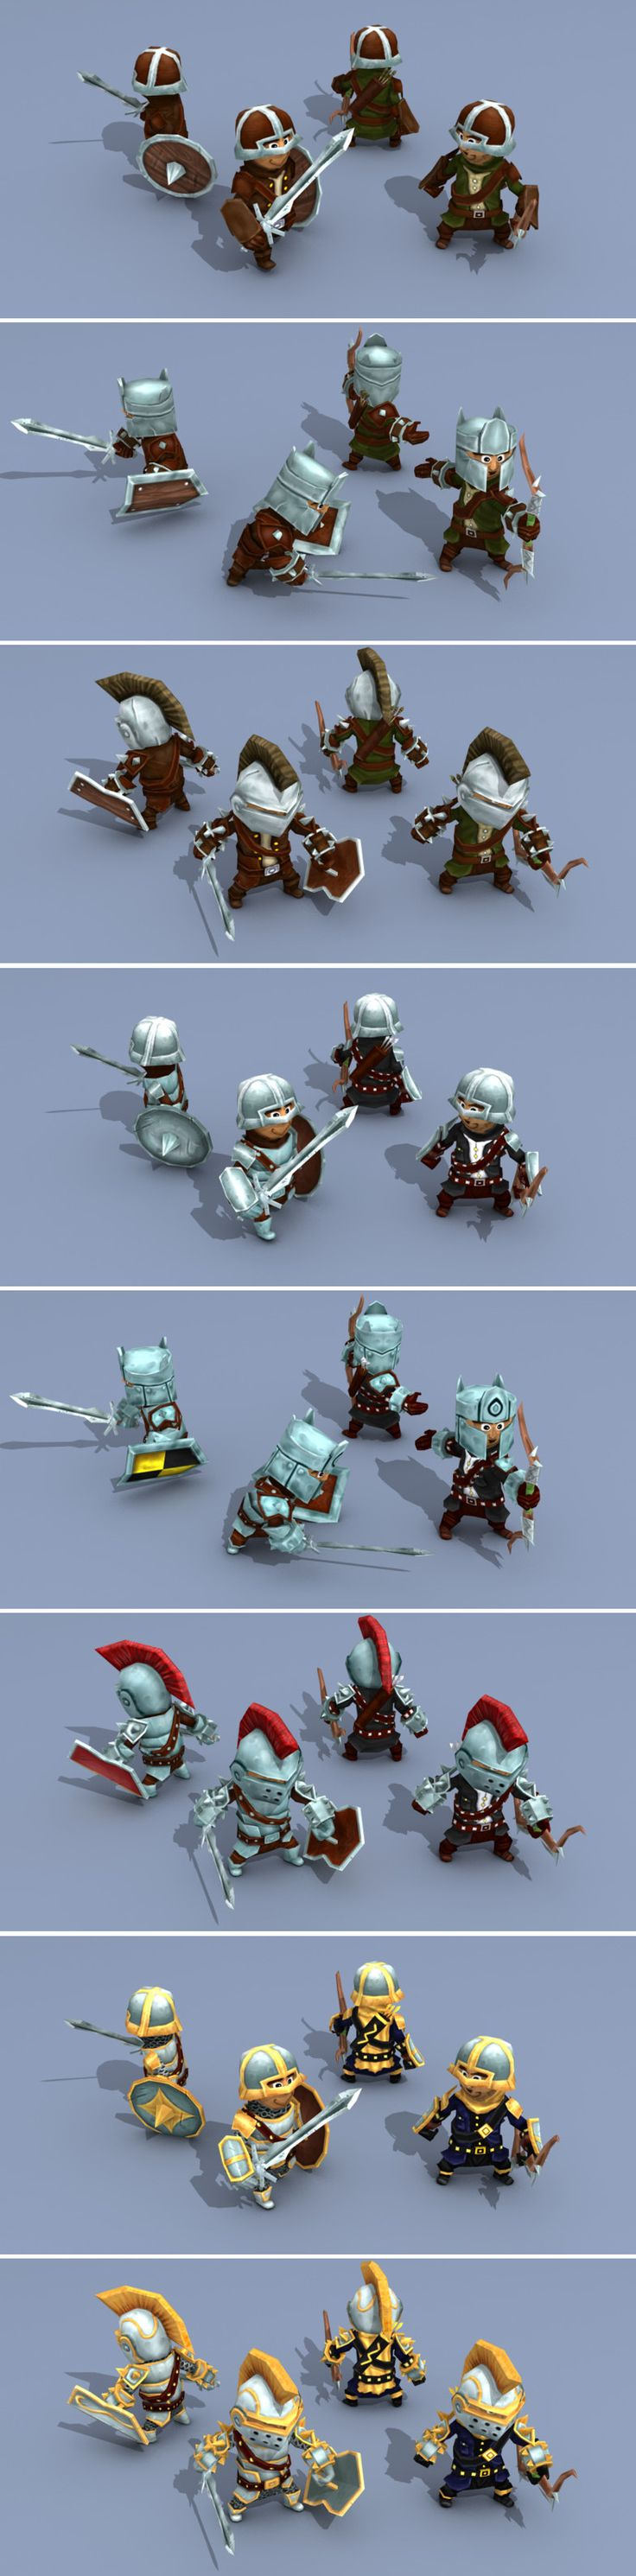 Full Fantasy Game Set / Bundle Contains: 14M Animated, Low Poly, Fantasy Bandits Cartoon Fantasy GUI Lowpoly Toon Forest Super Lowpoly Winter Environment Lowpoly Toon Autumn Forest Lowpoly Toon Ruins Lowpoly Toon Village 11k Animated Fantasy Heroes Fantasy Weapons Set Animated Fantasy Heroes Set 33 Animated Skeletons Set Animated Zombie Set30000 Animated Characters 20k Animated Fantasy Female Characters 15k Animated Fantasy Mob / Demon Set 15k Animated Mage Hero Set